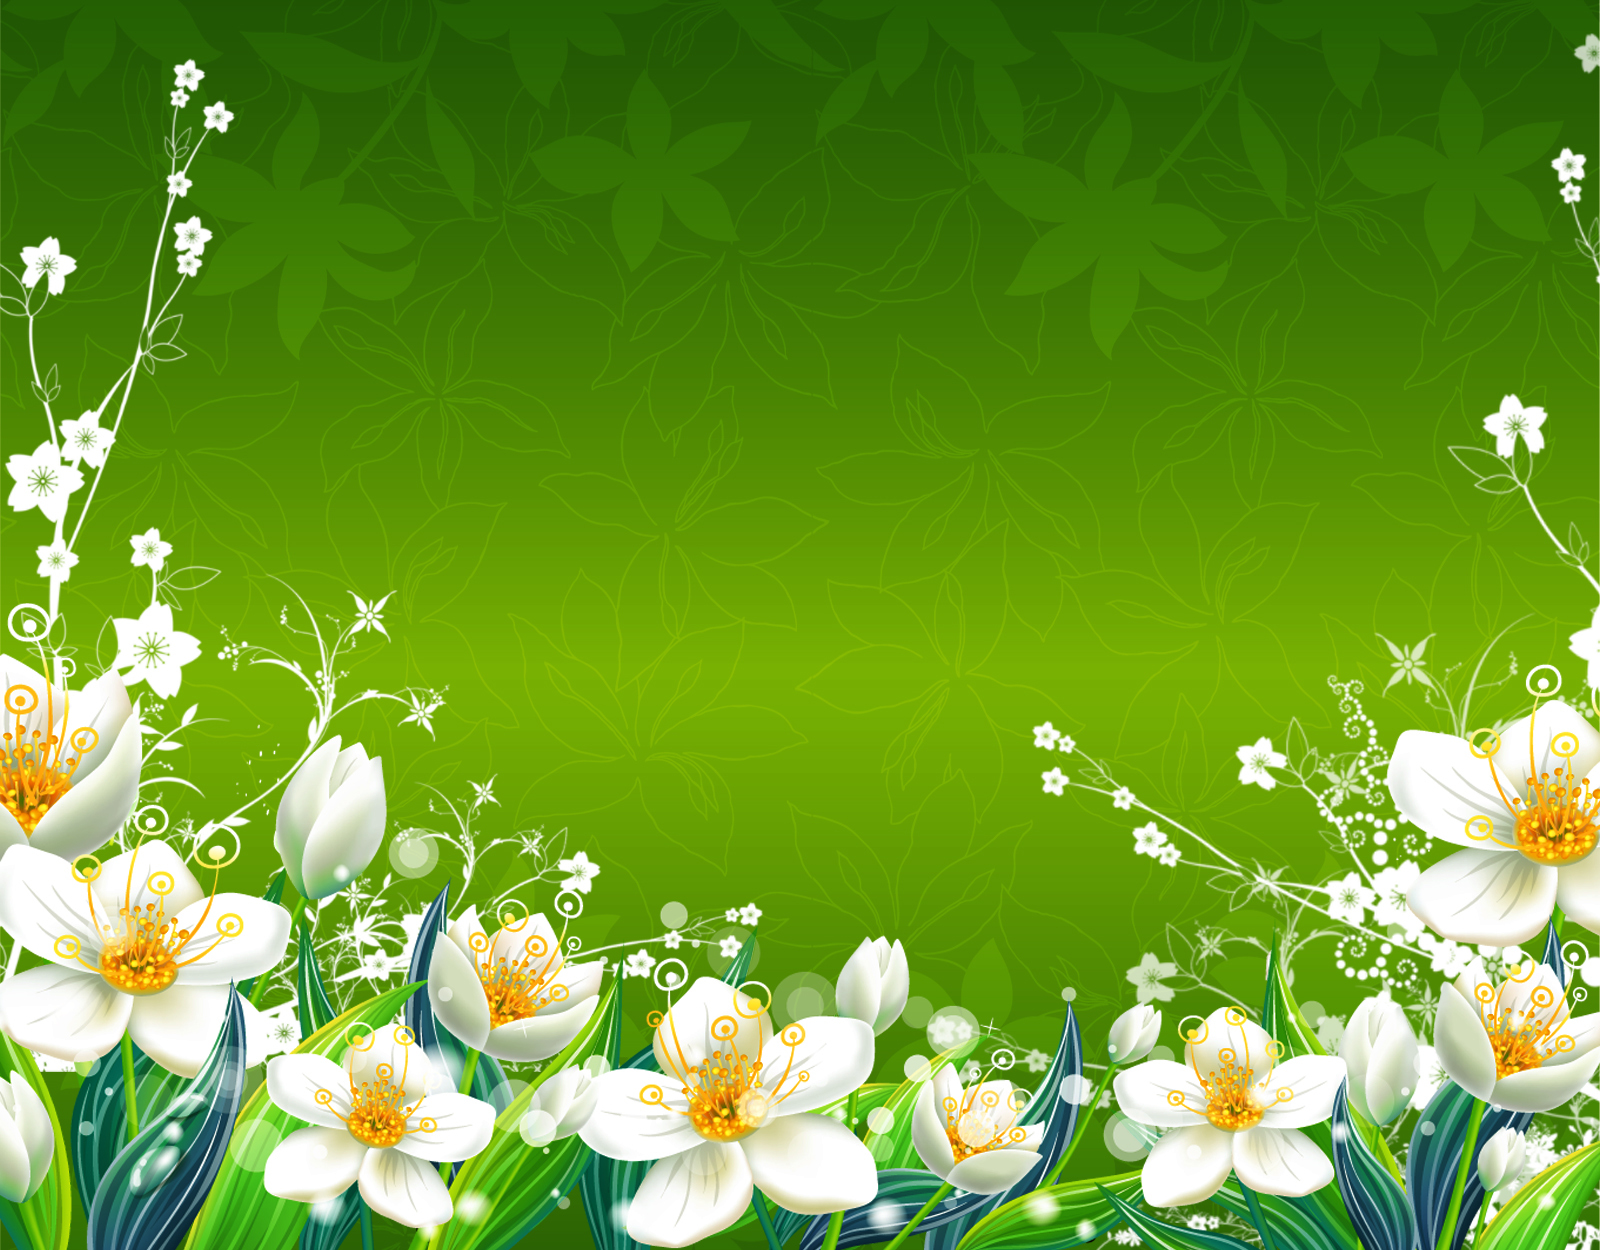 Green Flowers spring floral HD Wallpaper